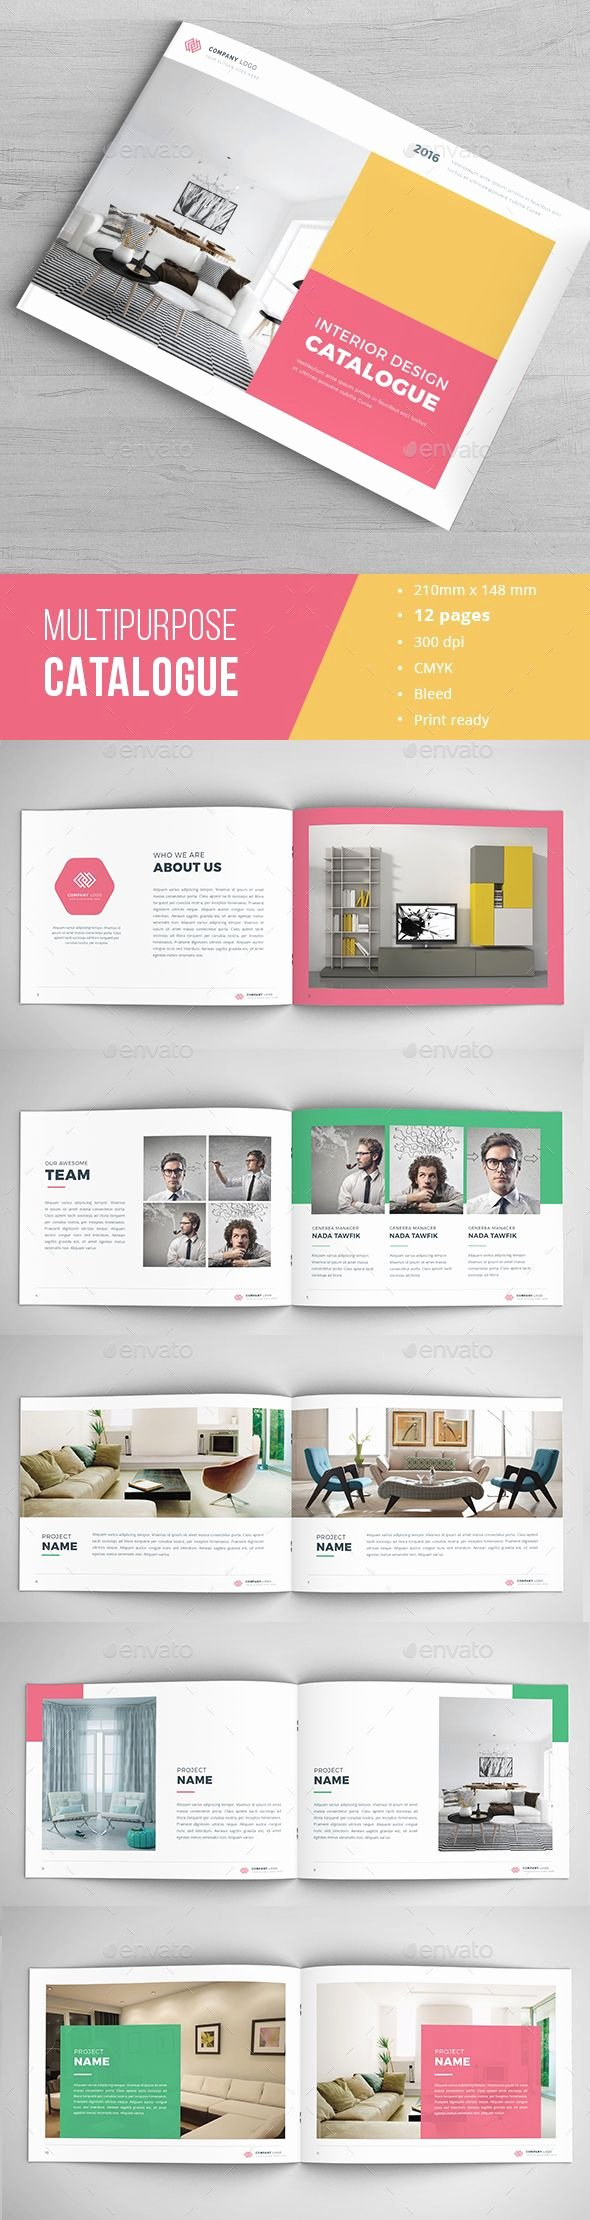 Product Catalog Design Template Luxury Best 25 Product Catalog Design Ideas On Pinterest